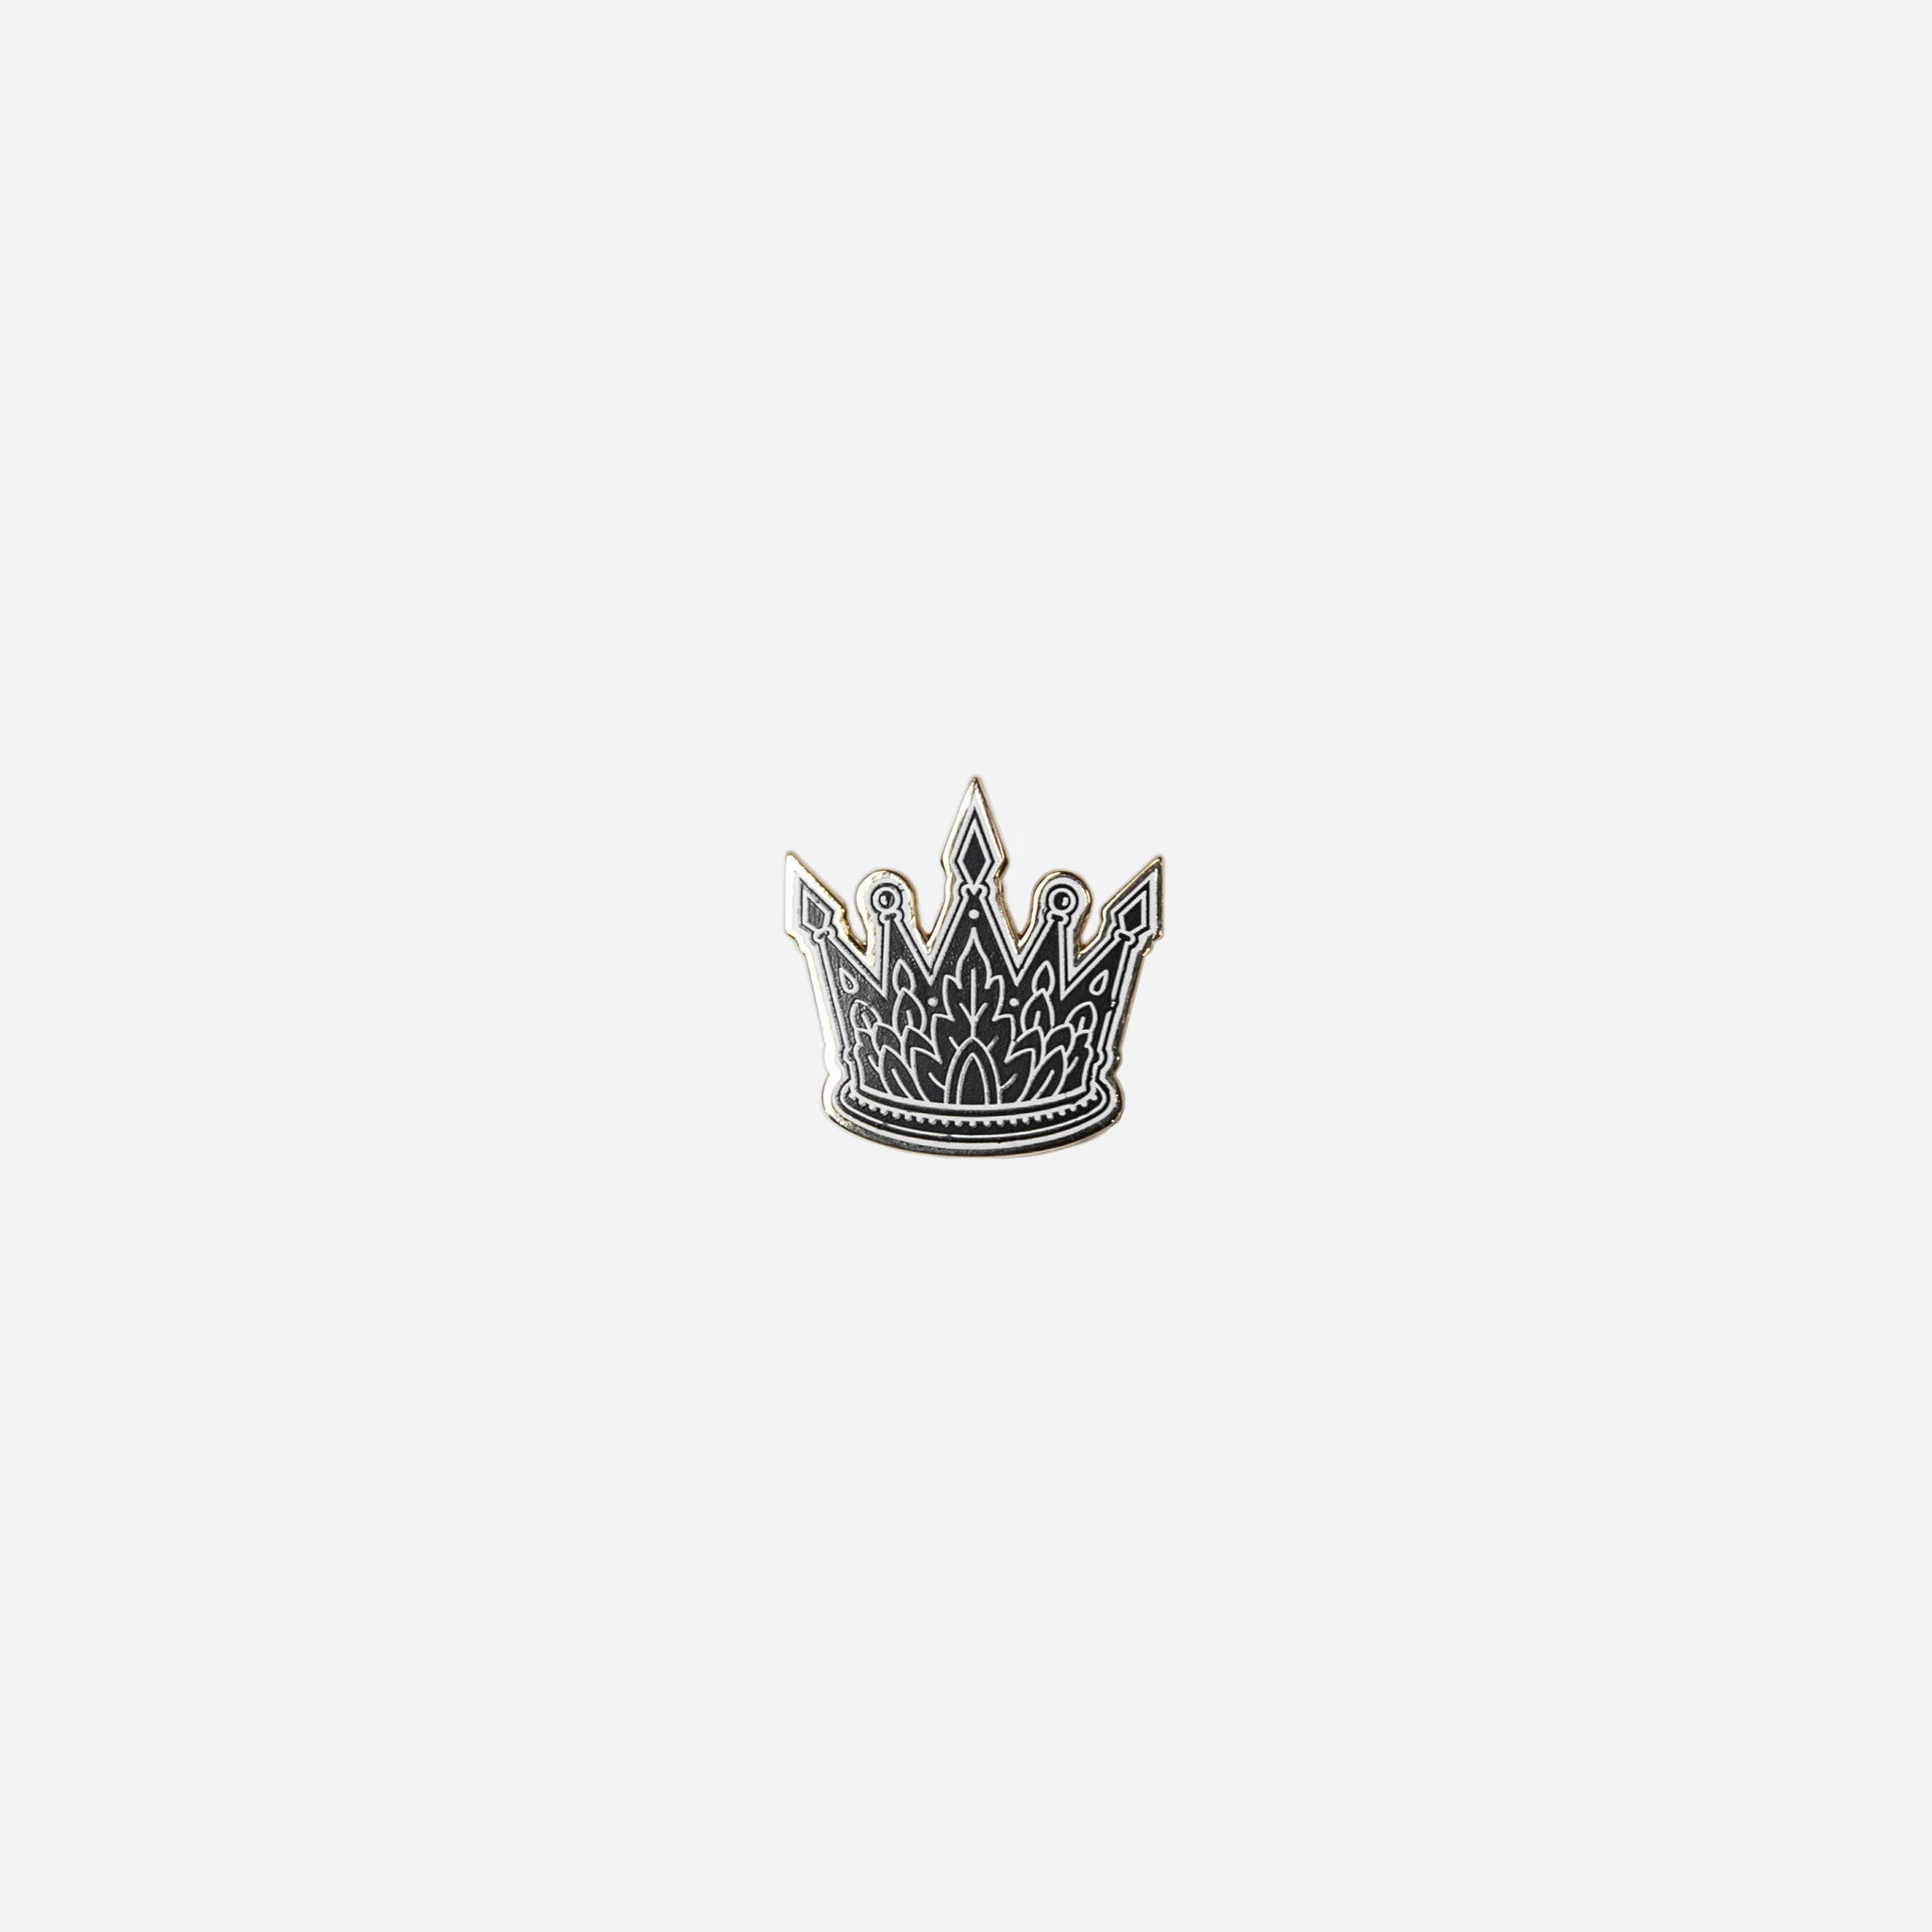 CHTD - Everlasting King Pin